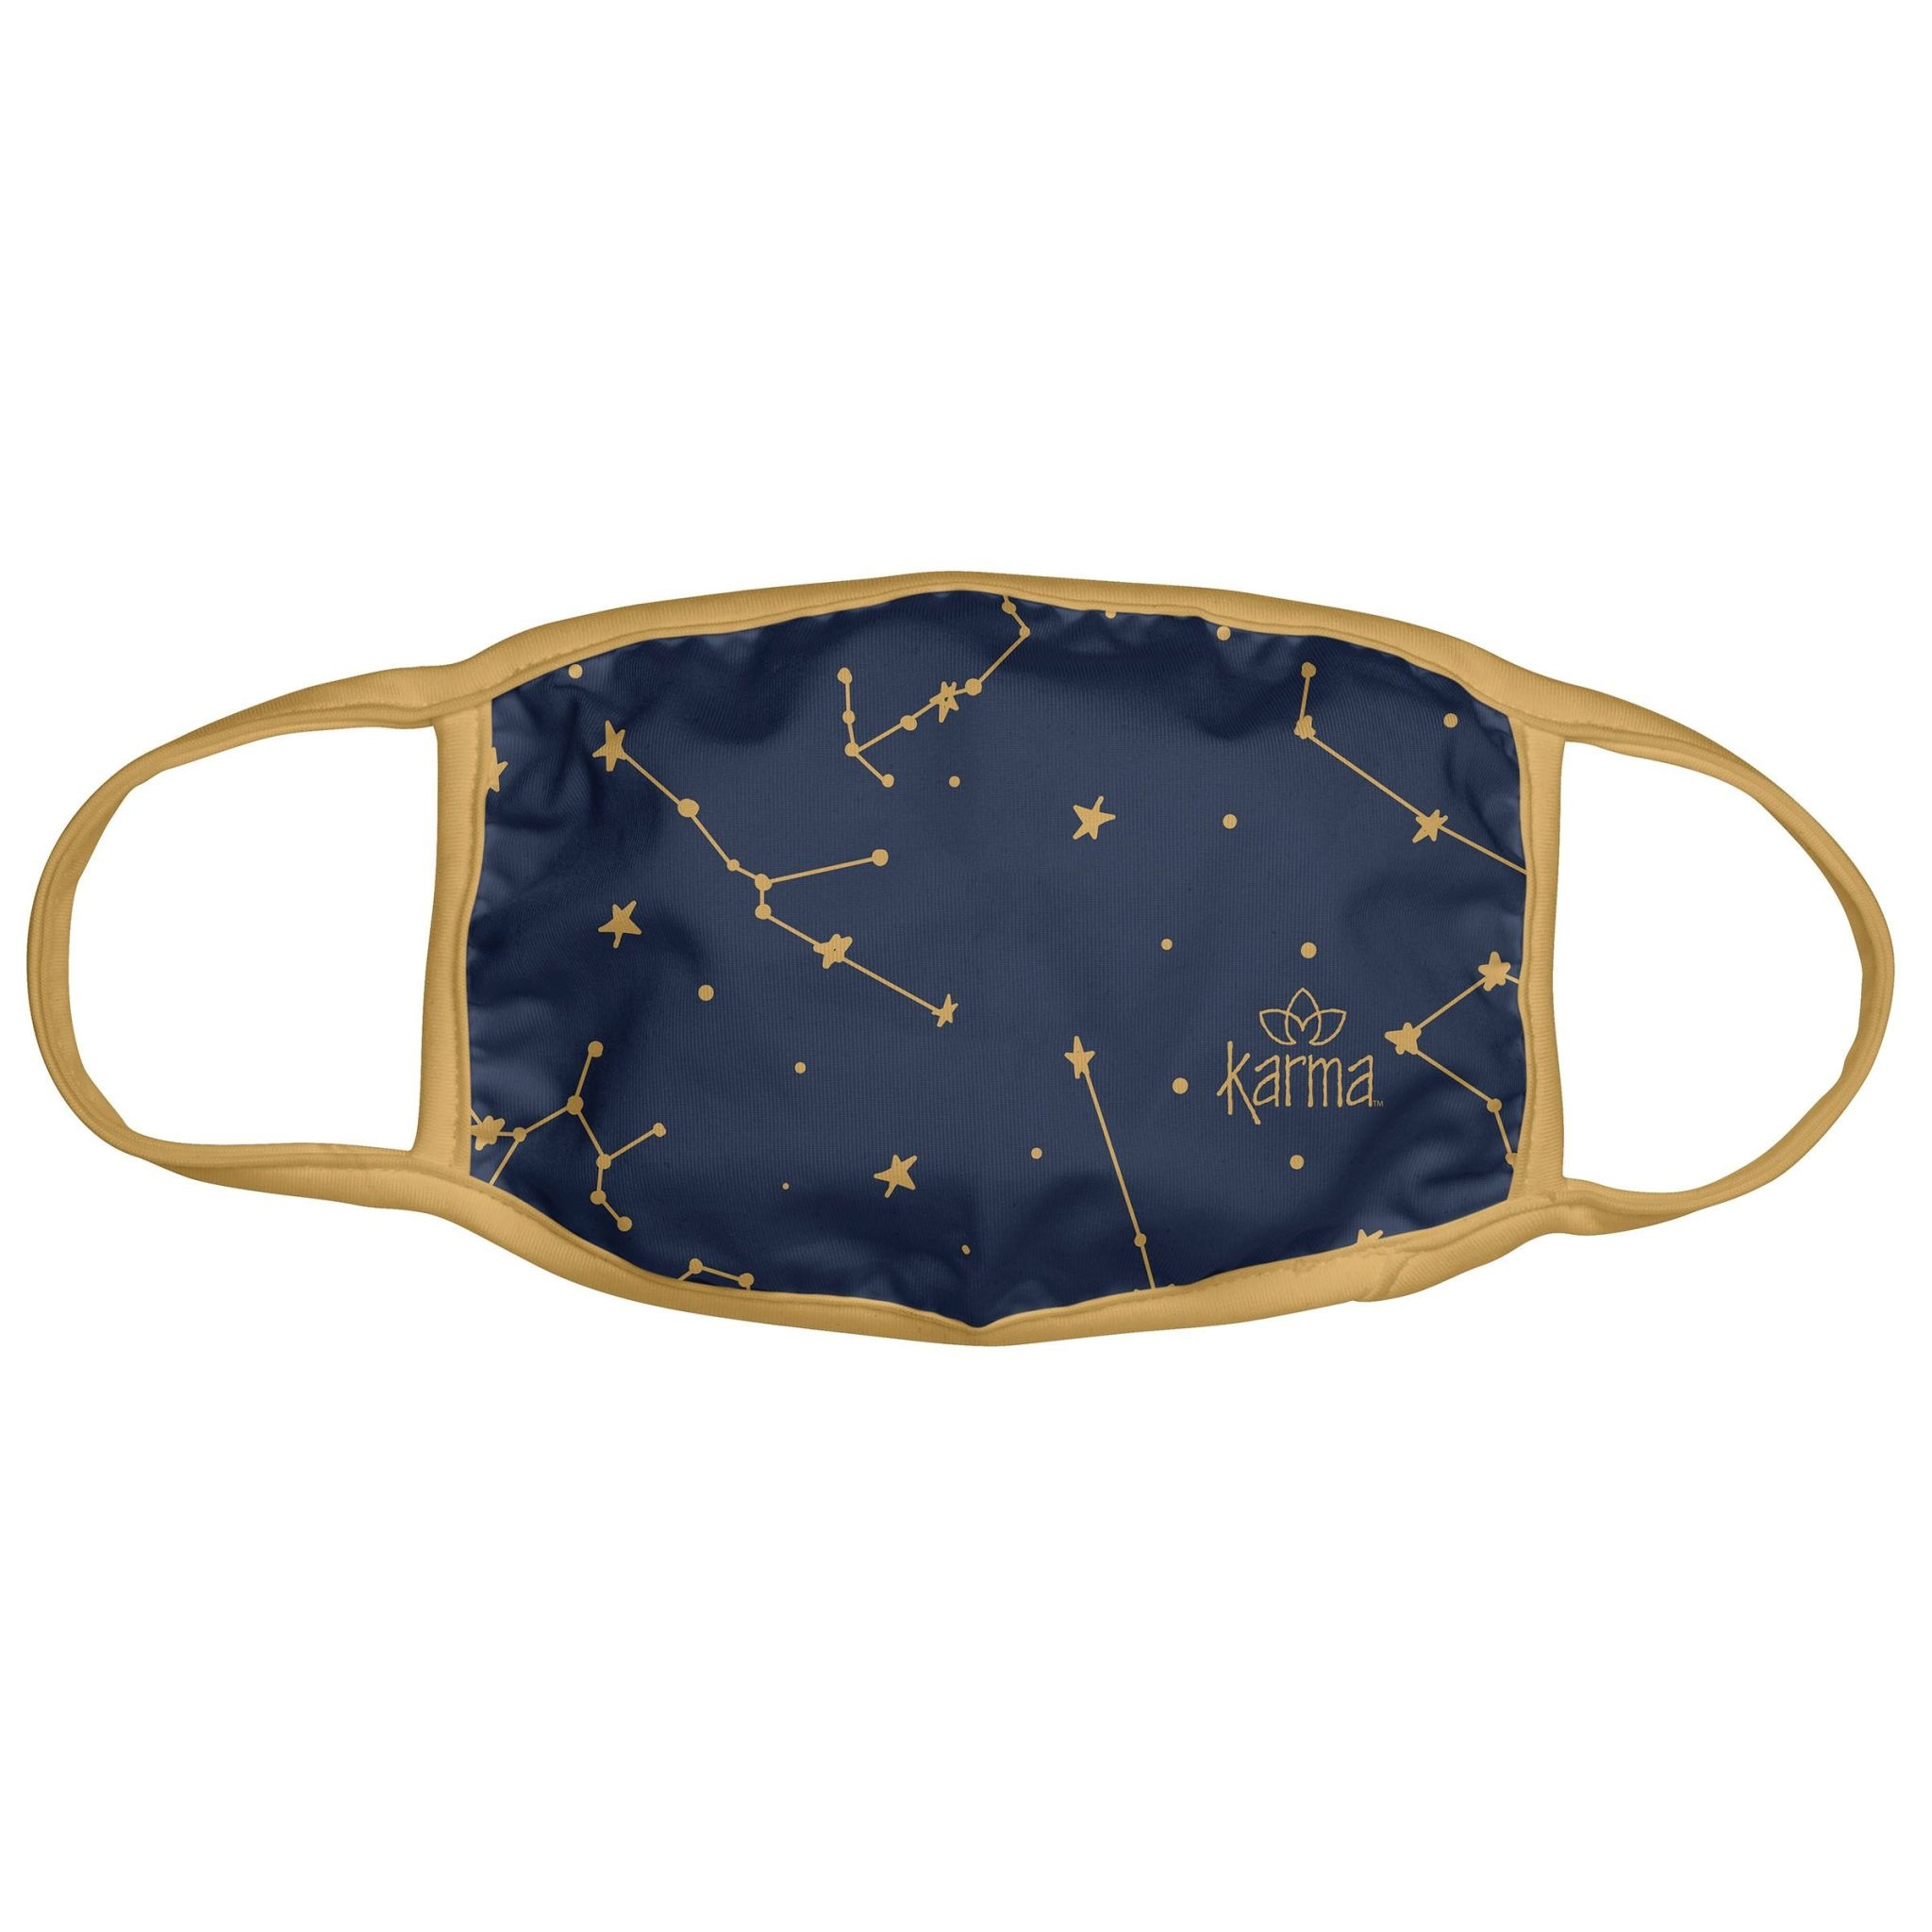 Karma Face Mask - Adult - Constellation